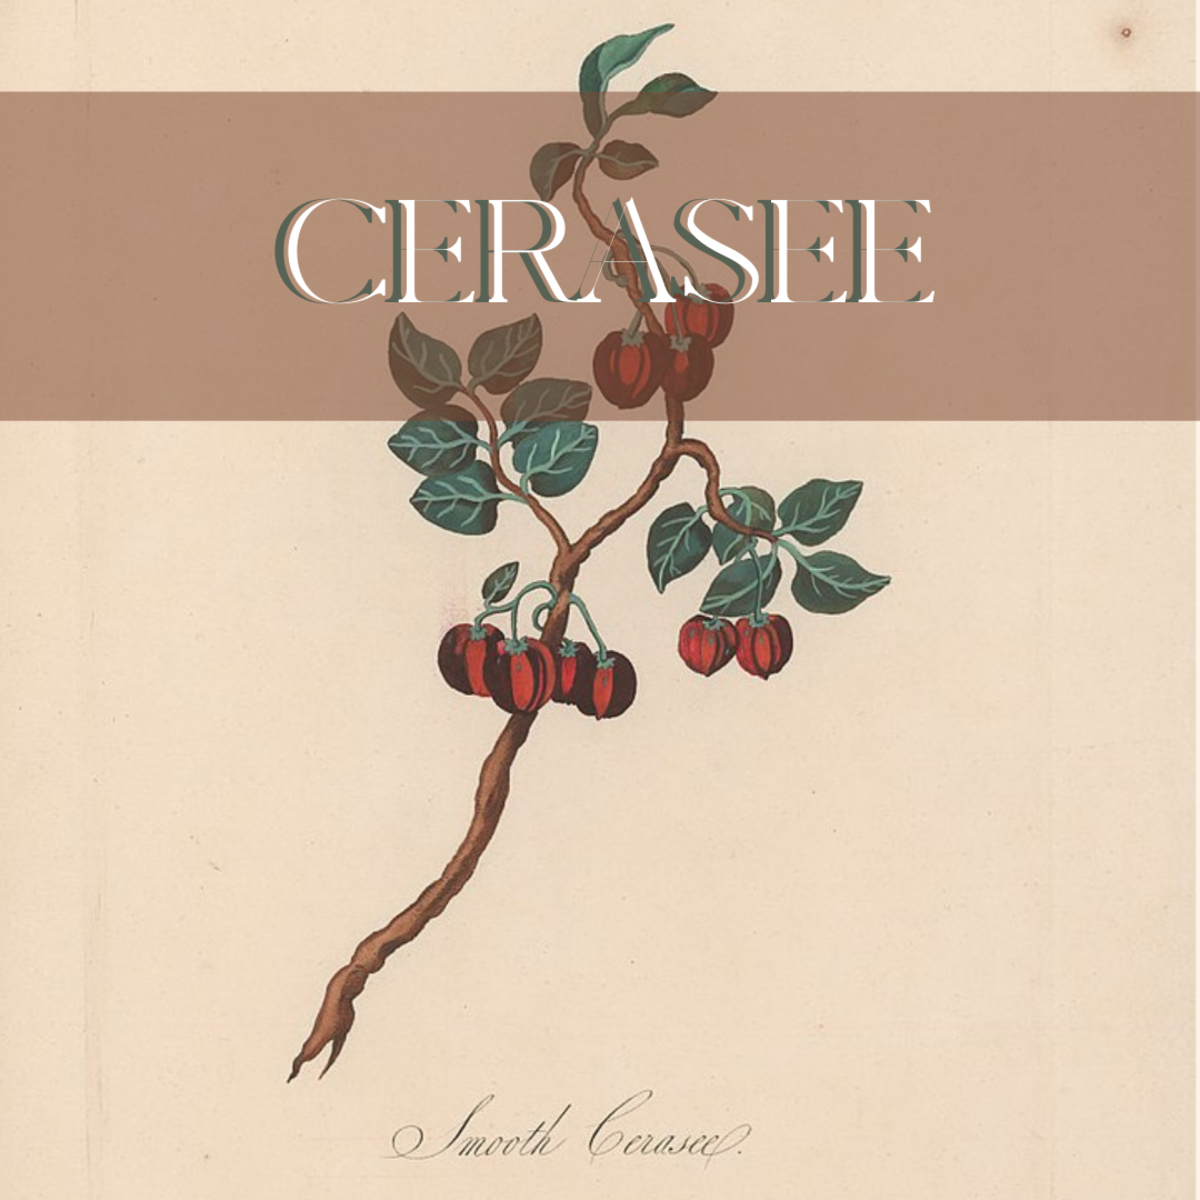 A Botanical Drawing of Cerasee